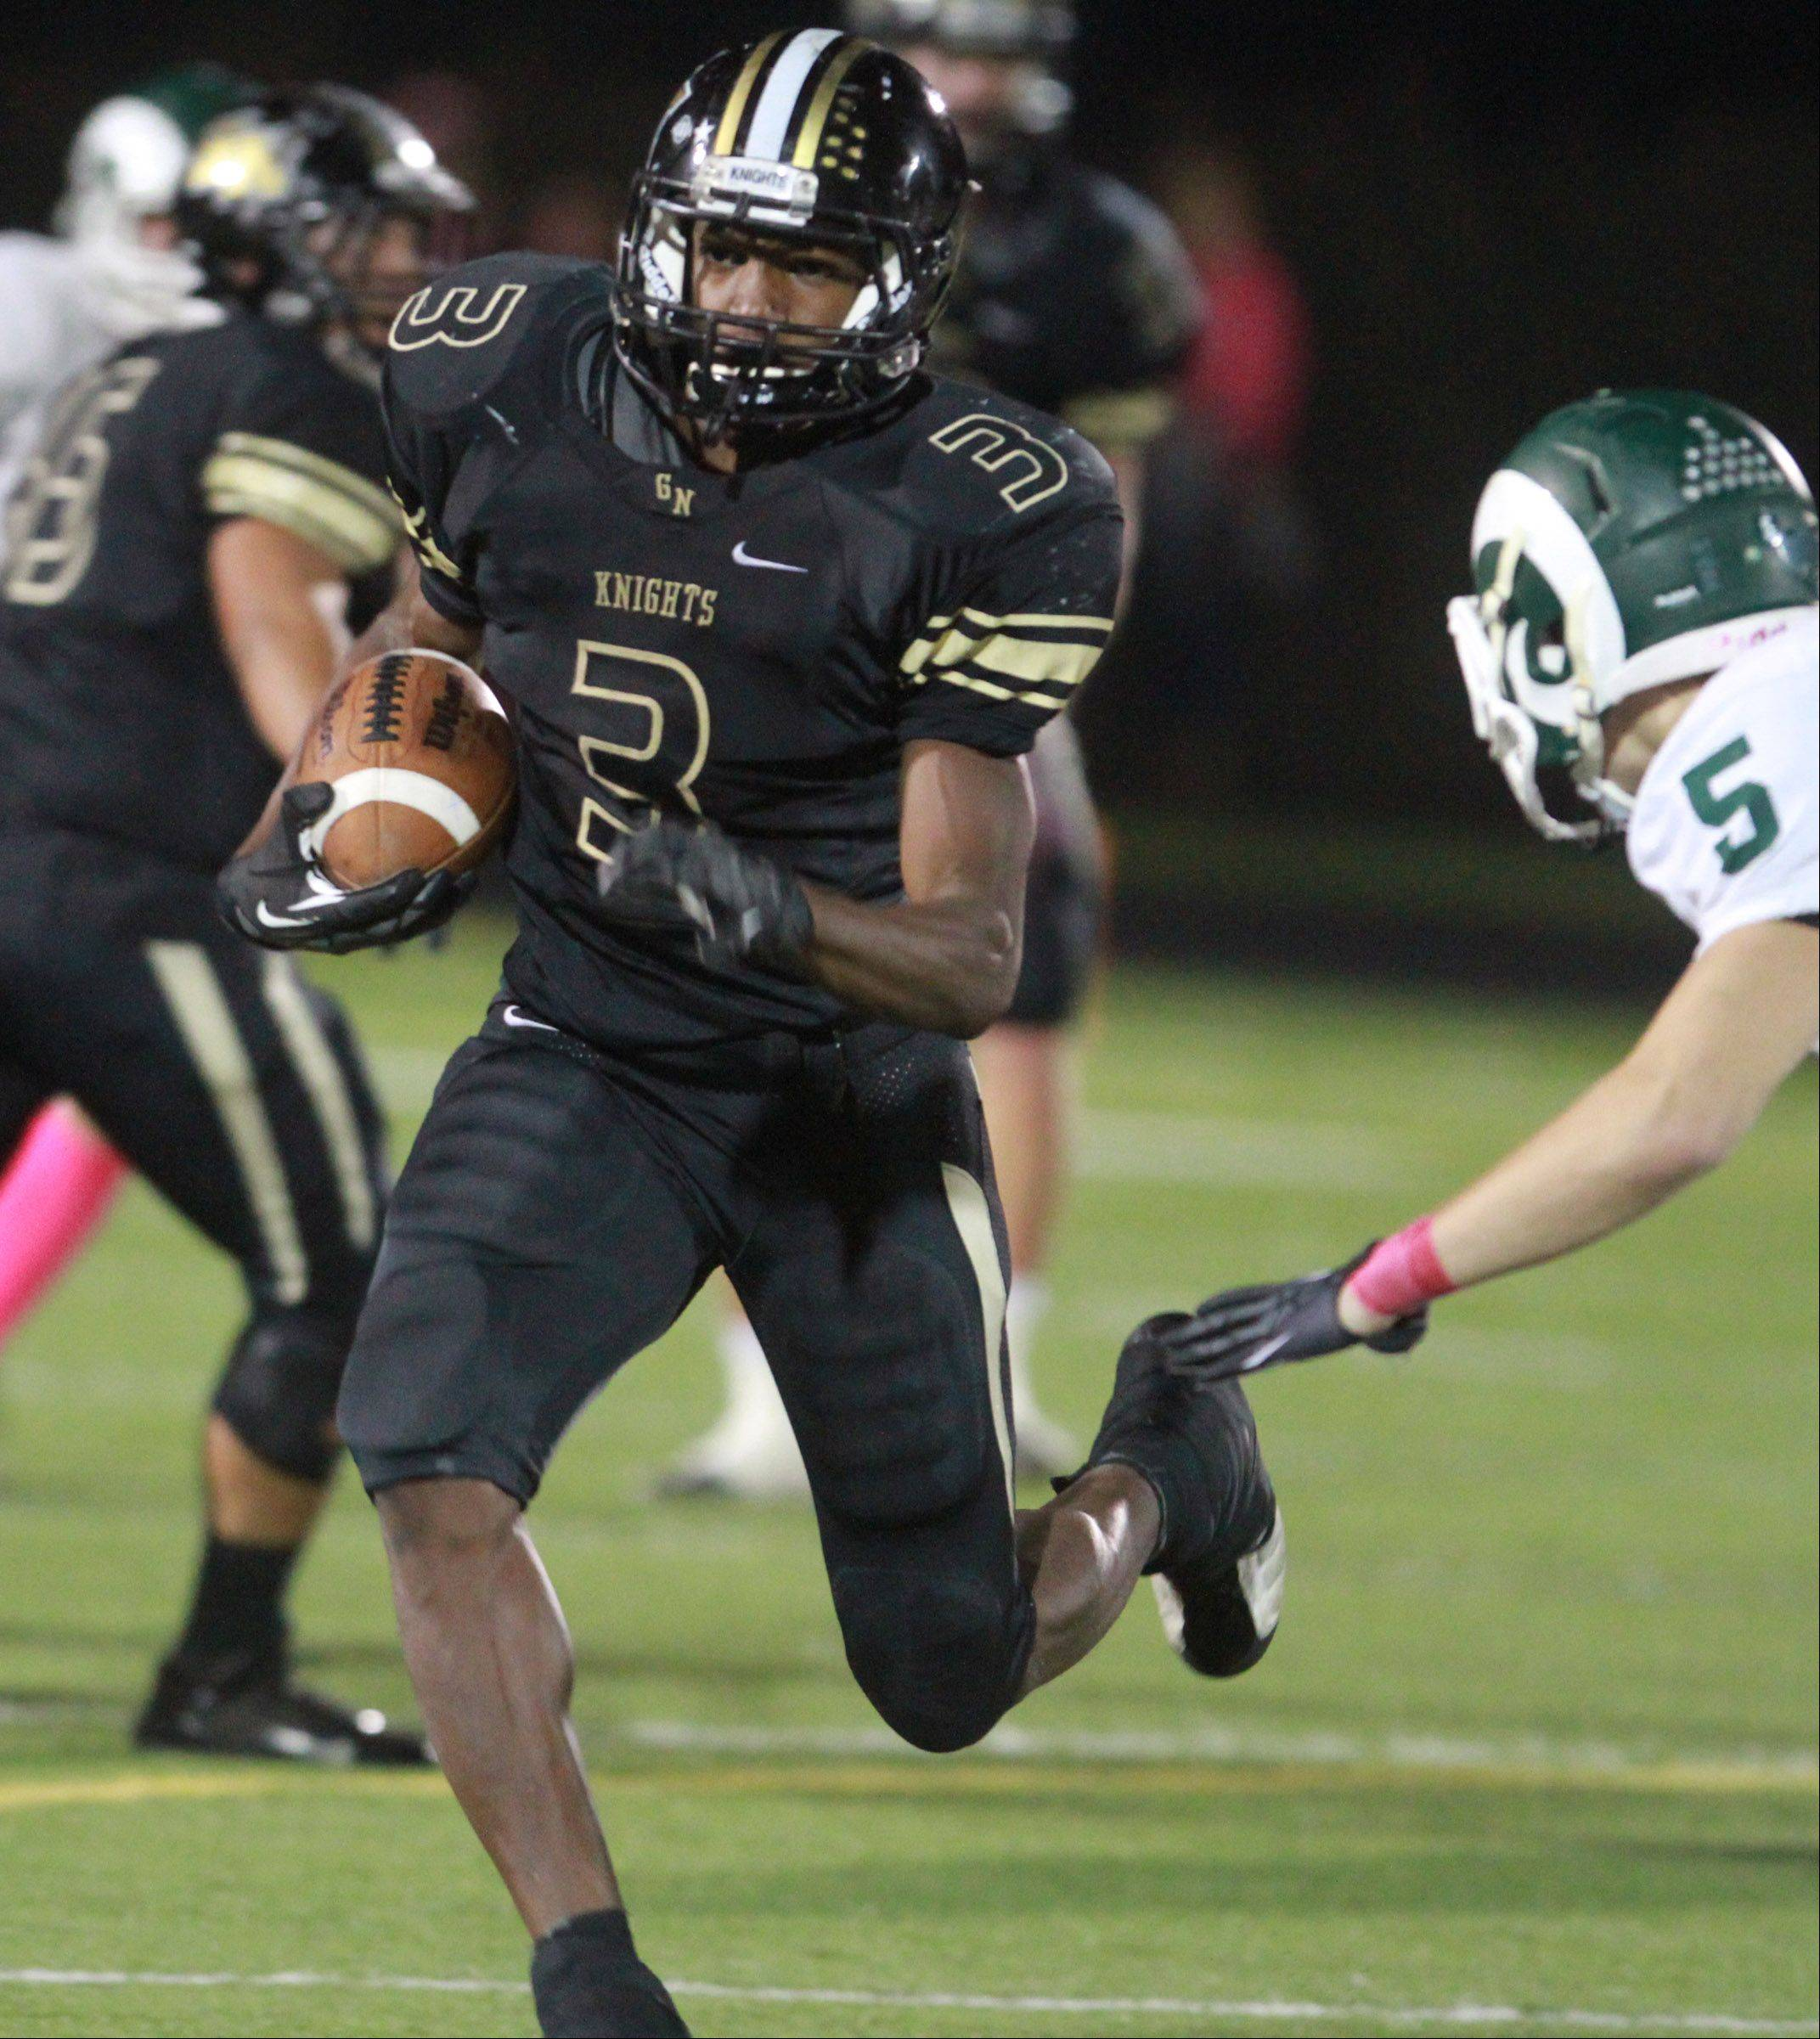 Week -7- Photos from the Grayslake Central at Grayslake North football game on Friday, Oct. 11.